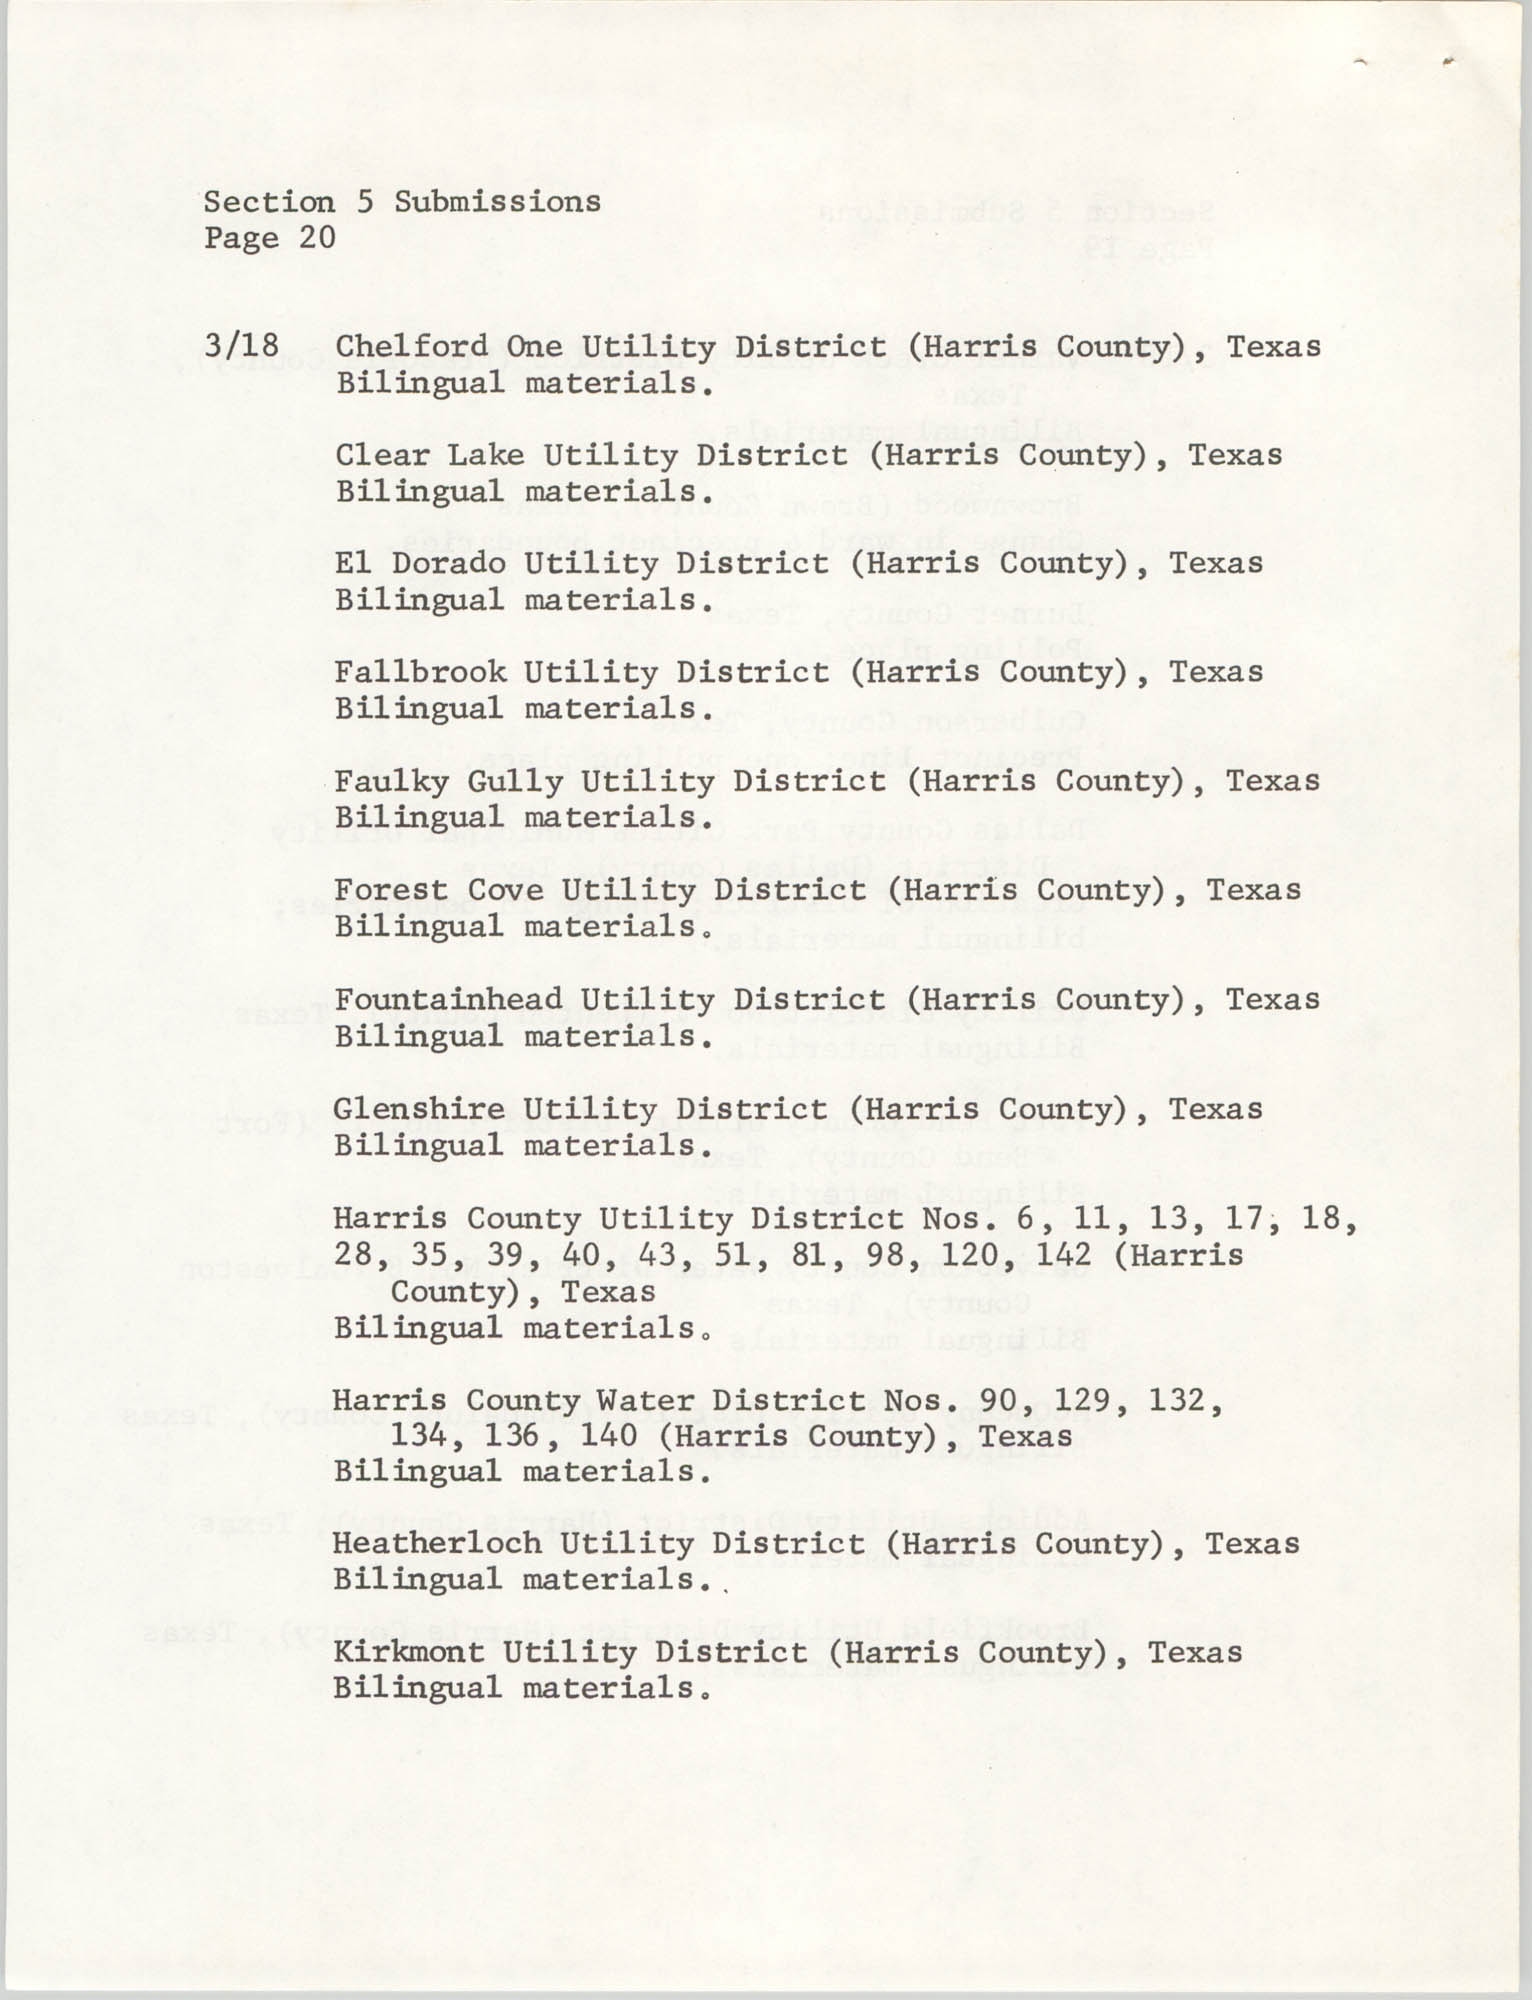 United States Department of Justice Notice, March 26, 1976, Page 20